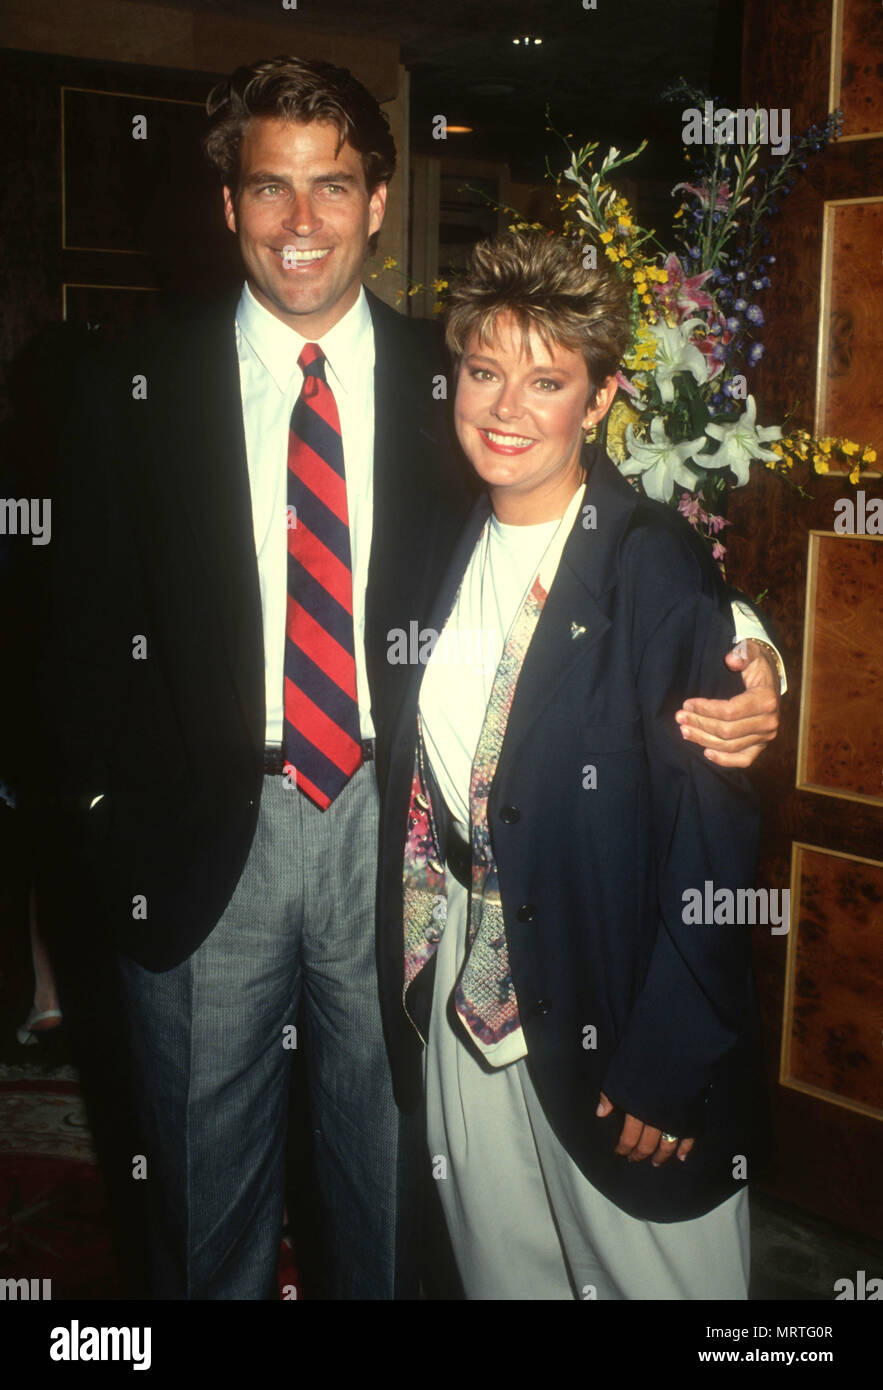 Amanda Bearse Pictures los angeles, ca - april 15: (l-r) actor ted mcginley and